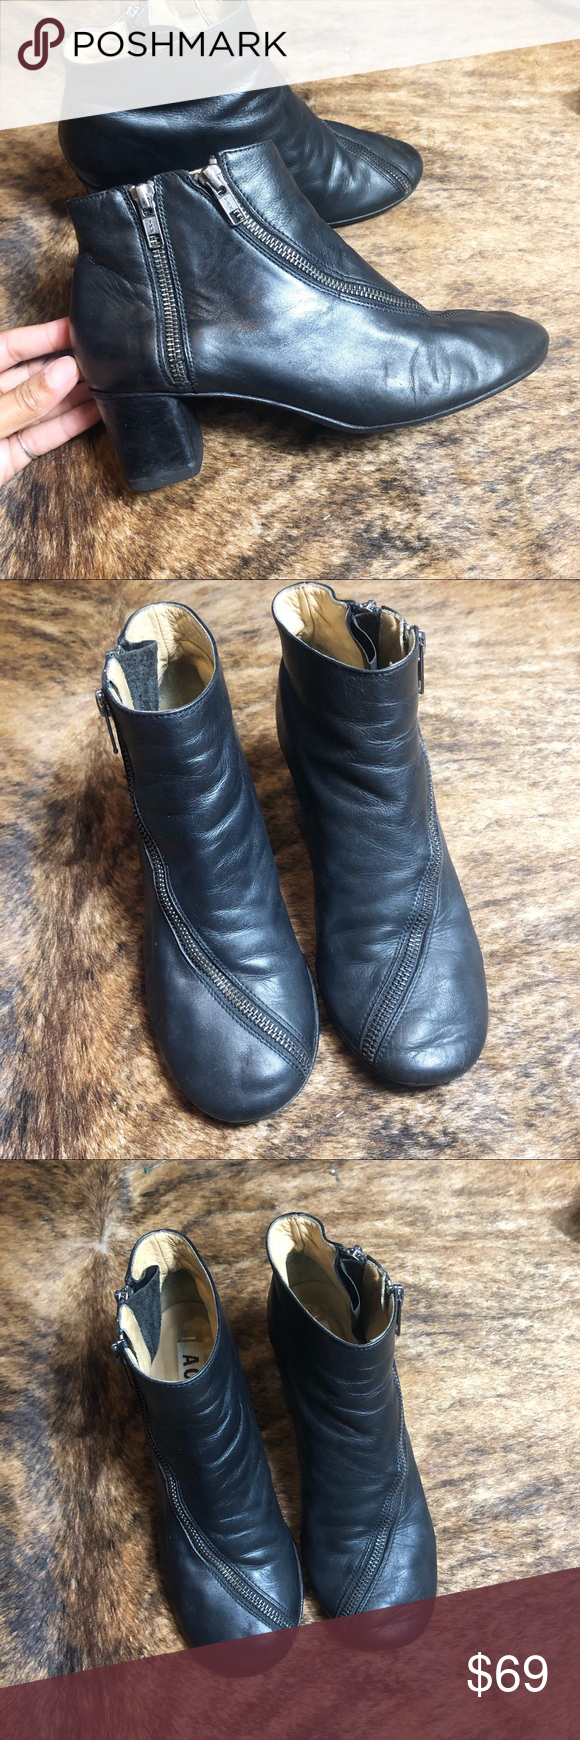 907e543dfed ACNE STUDIOS ankle Bootie Acne Studios Ankle Bootie size 9 (39) Black  leather boots